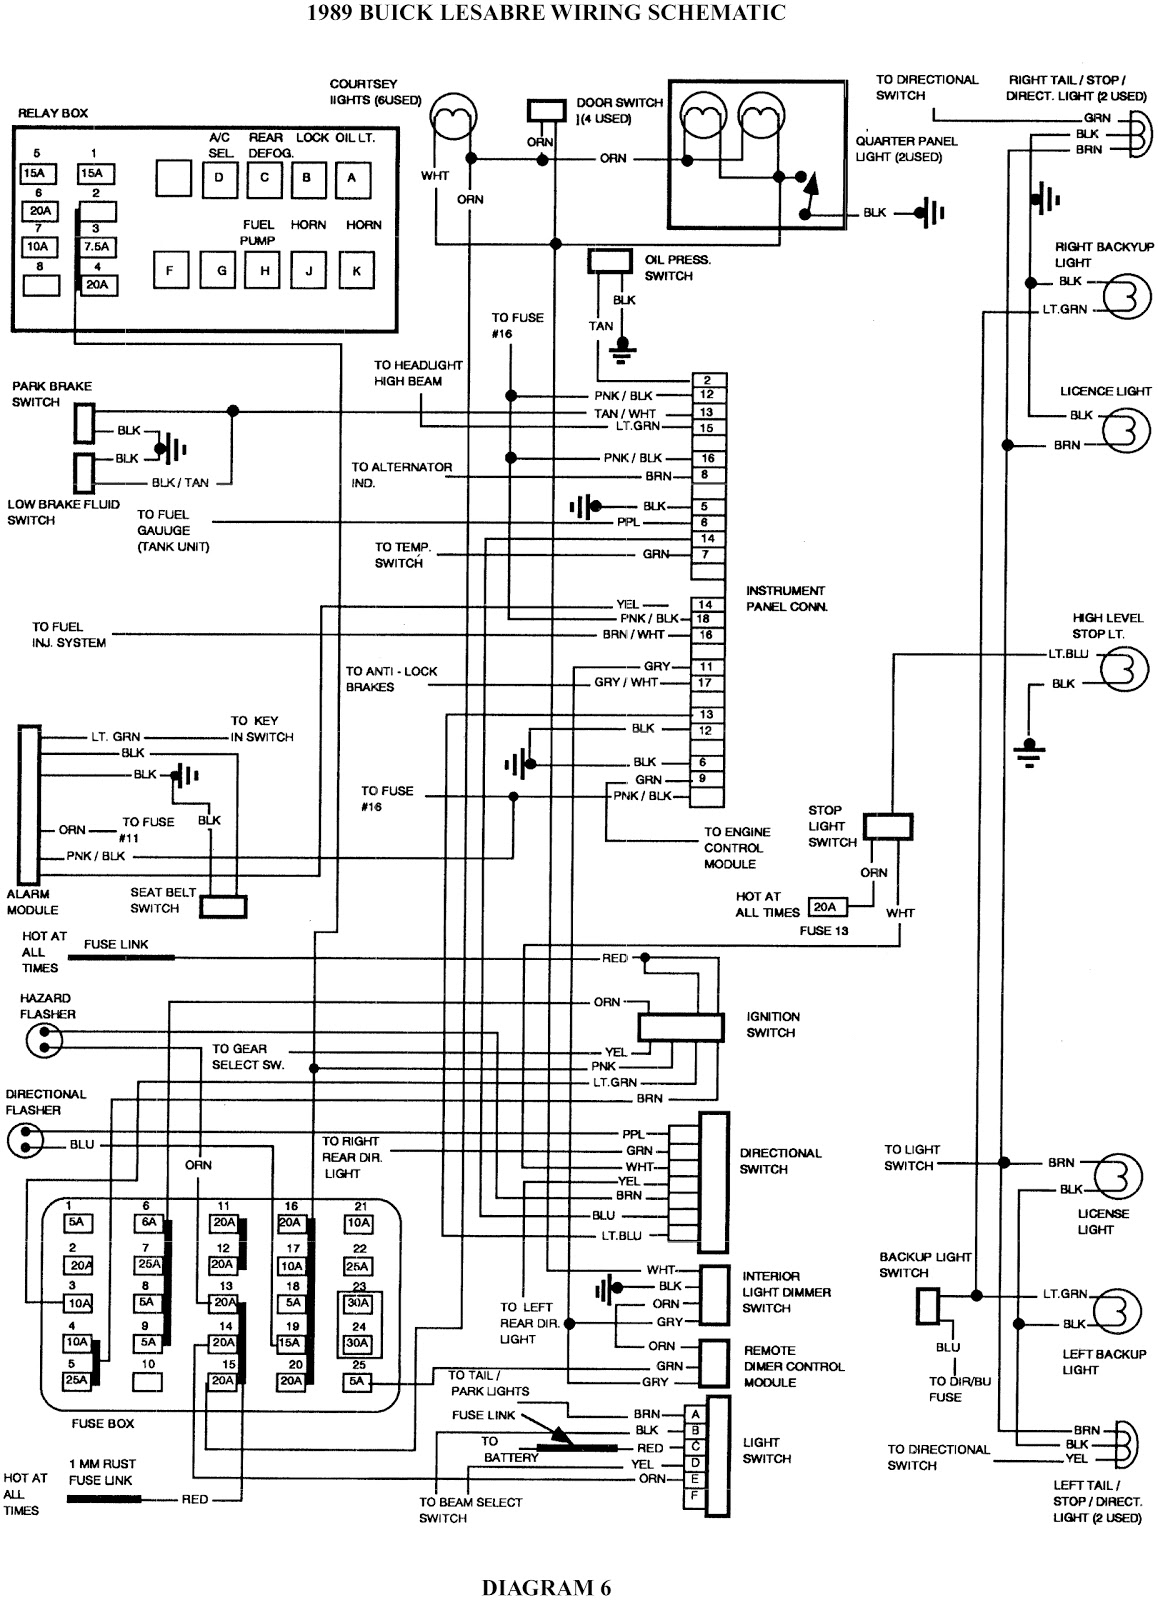 98 Buick Lesabre Wiring Diagram Diagram Base Website Wiring ... 2005 Buick Lesabre Wiring Diagram Free Picture Diagram Base Website Full Edition - annecy-wireless